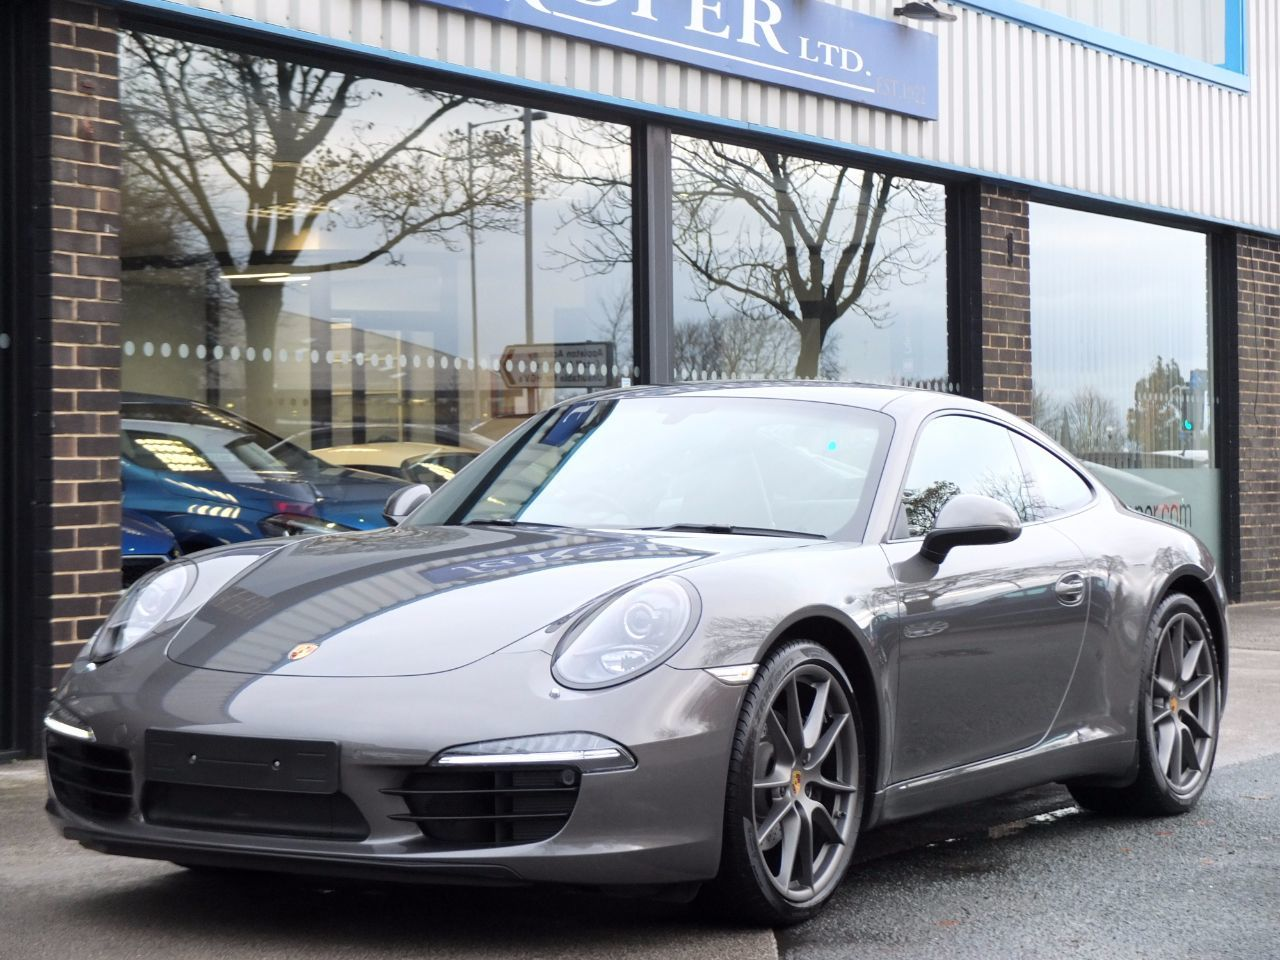 Porsche 911 991 Carrera 3.4 PDK Coupe Petrol Agate Grey MetallicPorsche 911 991 Carrera 3.4 PDK Coupe Petrol Agate Grey Metallic at fa Roper Ltd Bradford